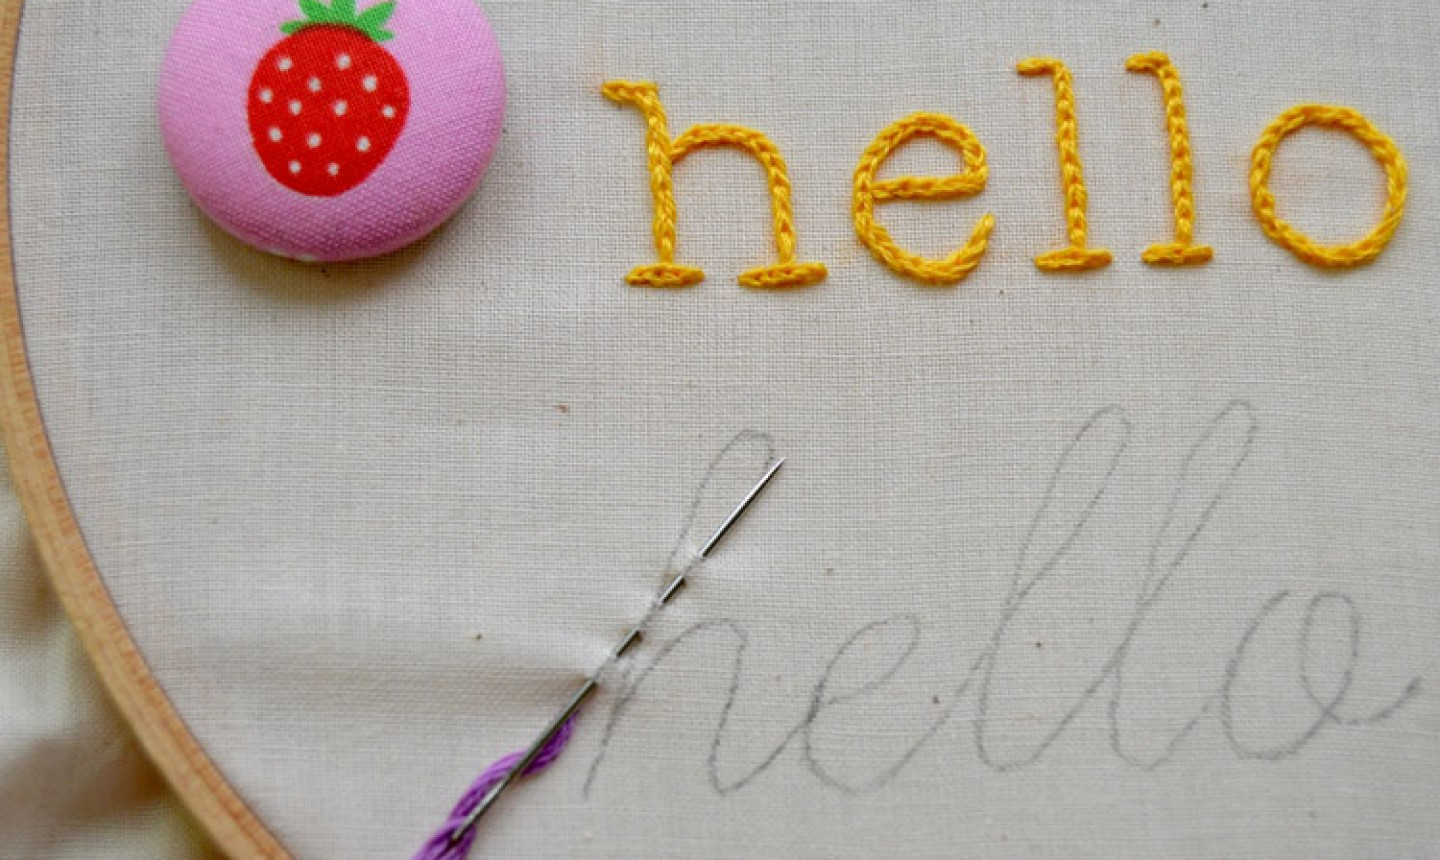 Hand Embroidery Alphabet Patterns Free 4 Surprisingly Easy Stitches For Perfect Hand Embroidered Letters